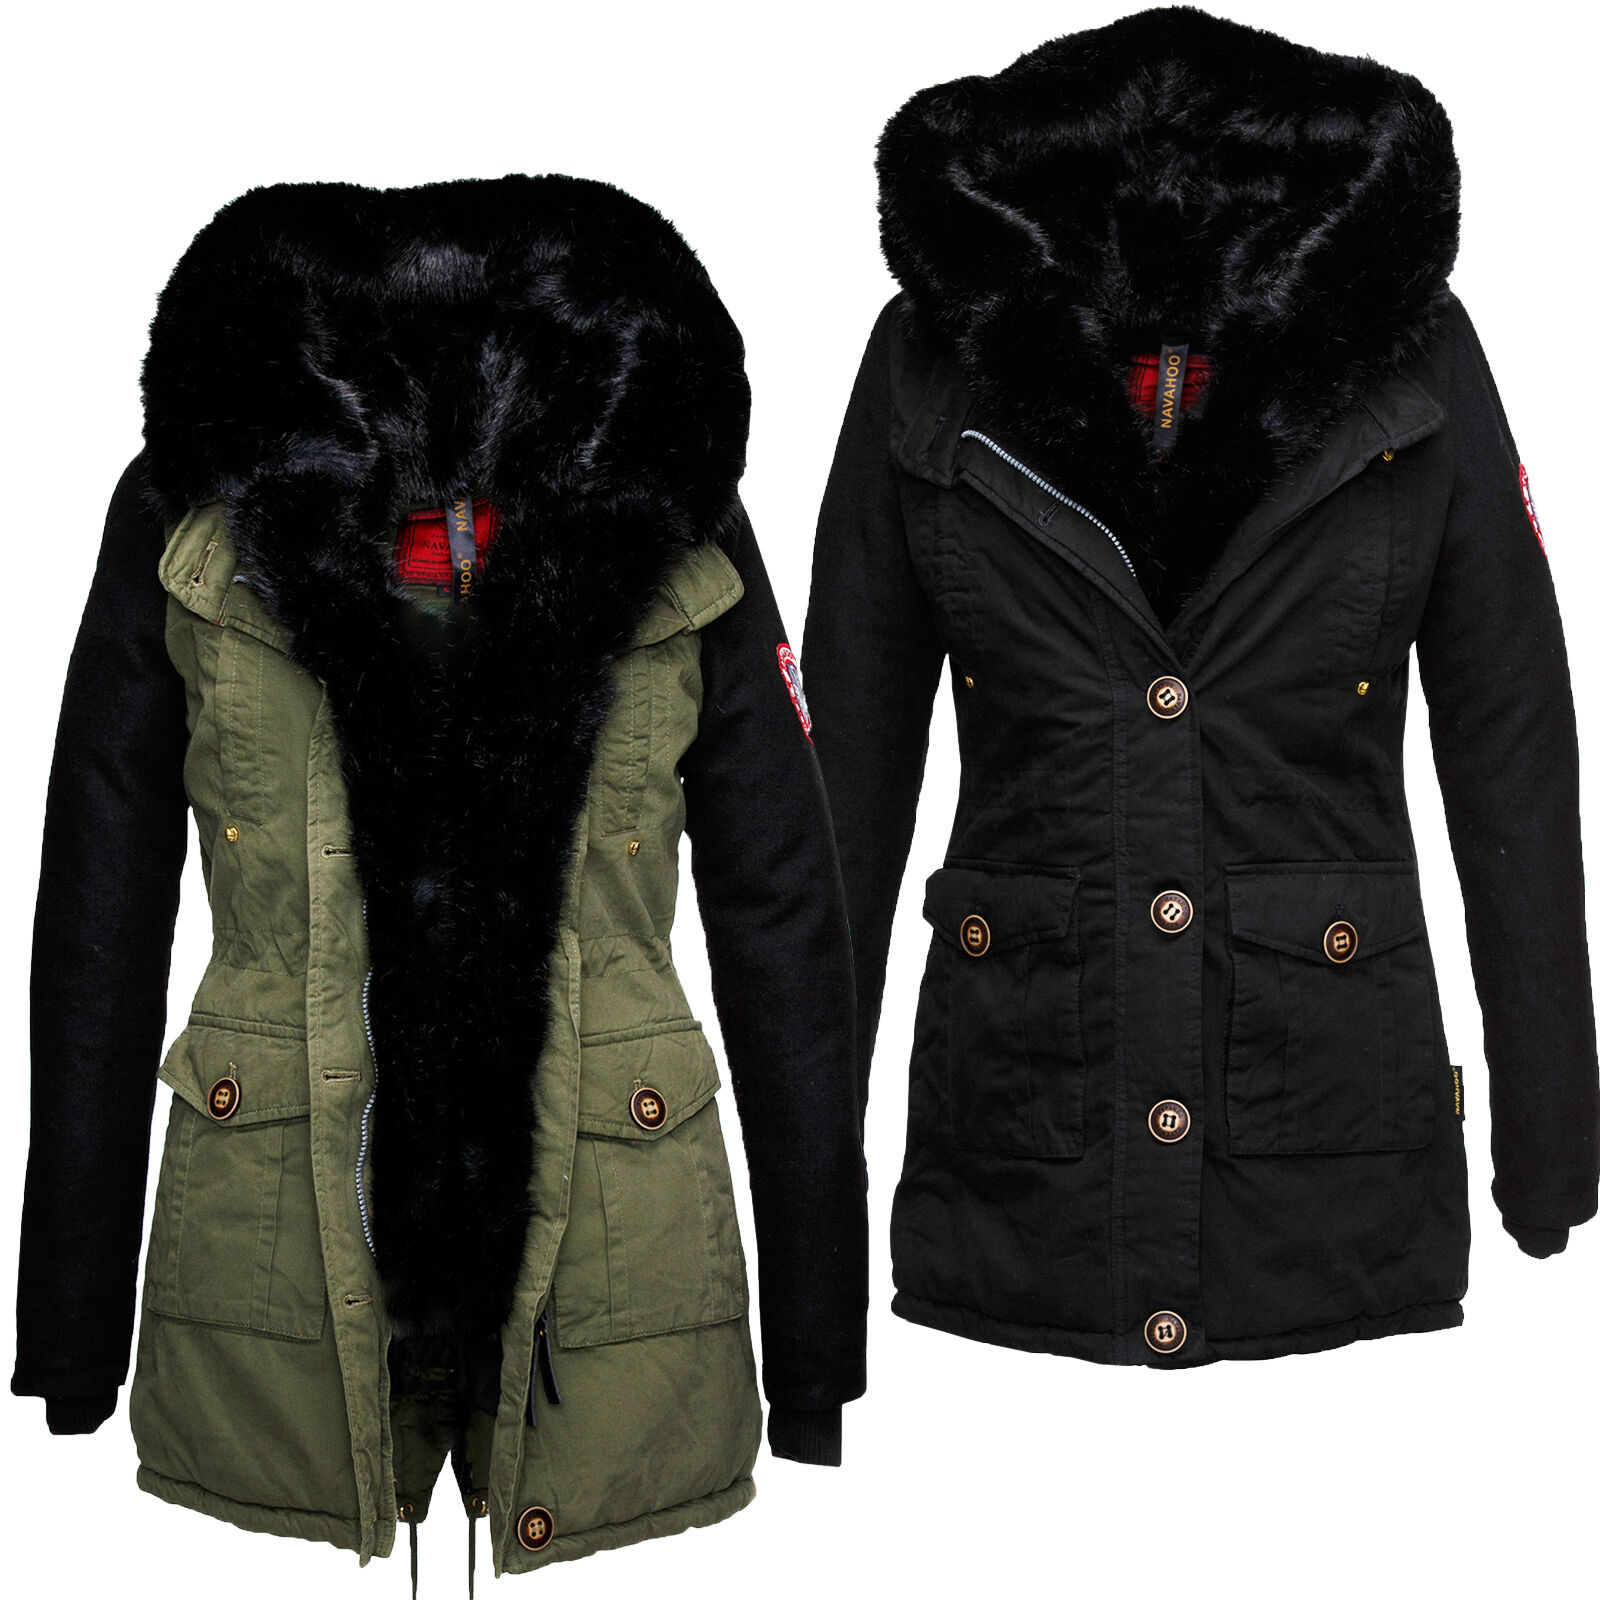 navahoo damen jacke darleen herbst winter mantel parka. Black Bedroom Furniture Sets. Home Design Ideas